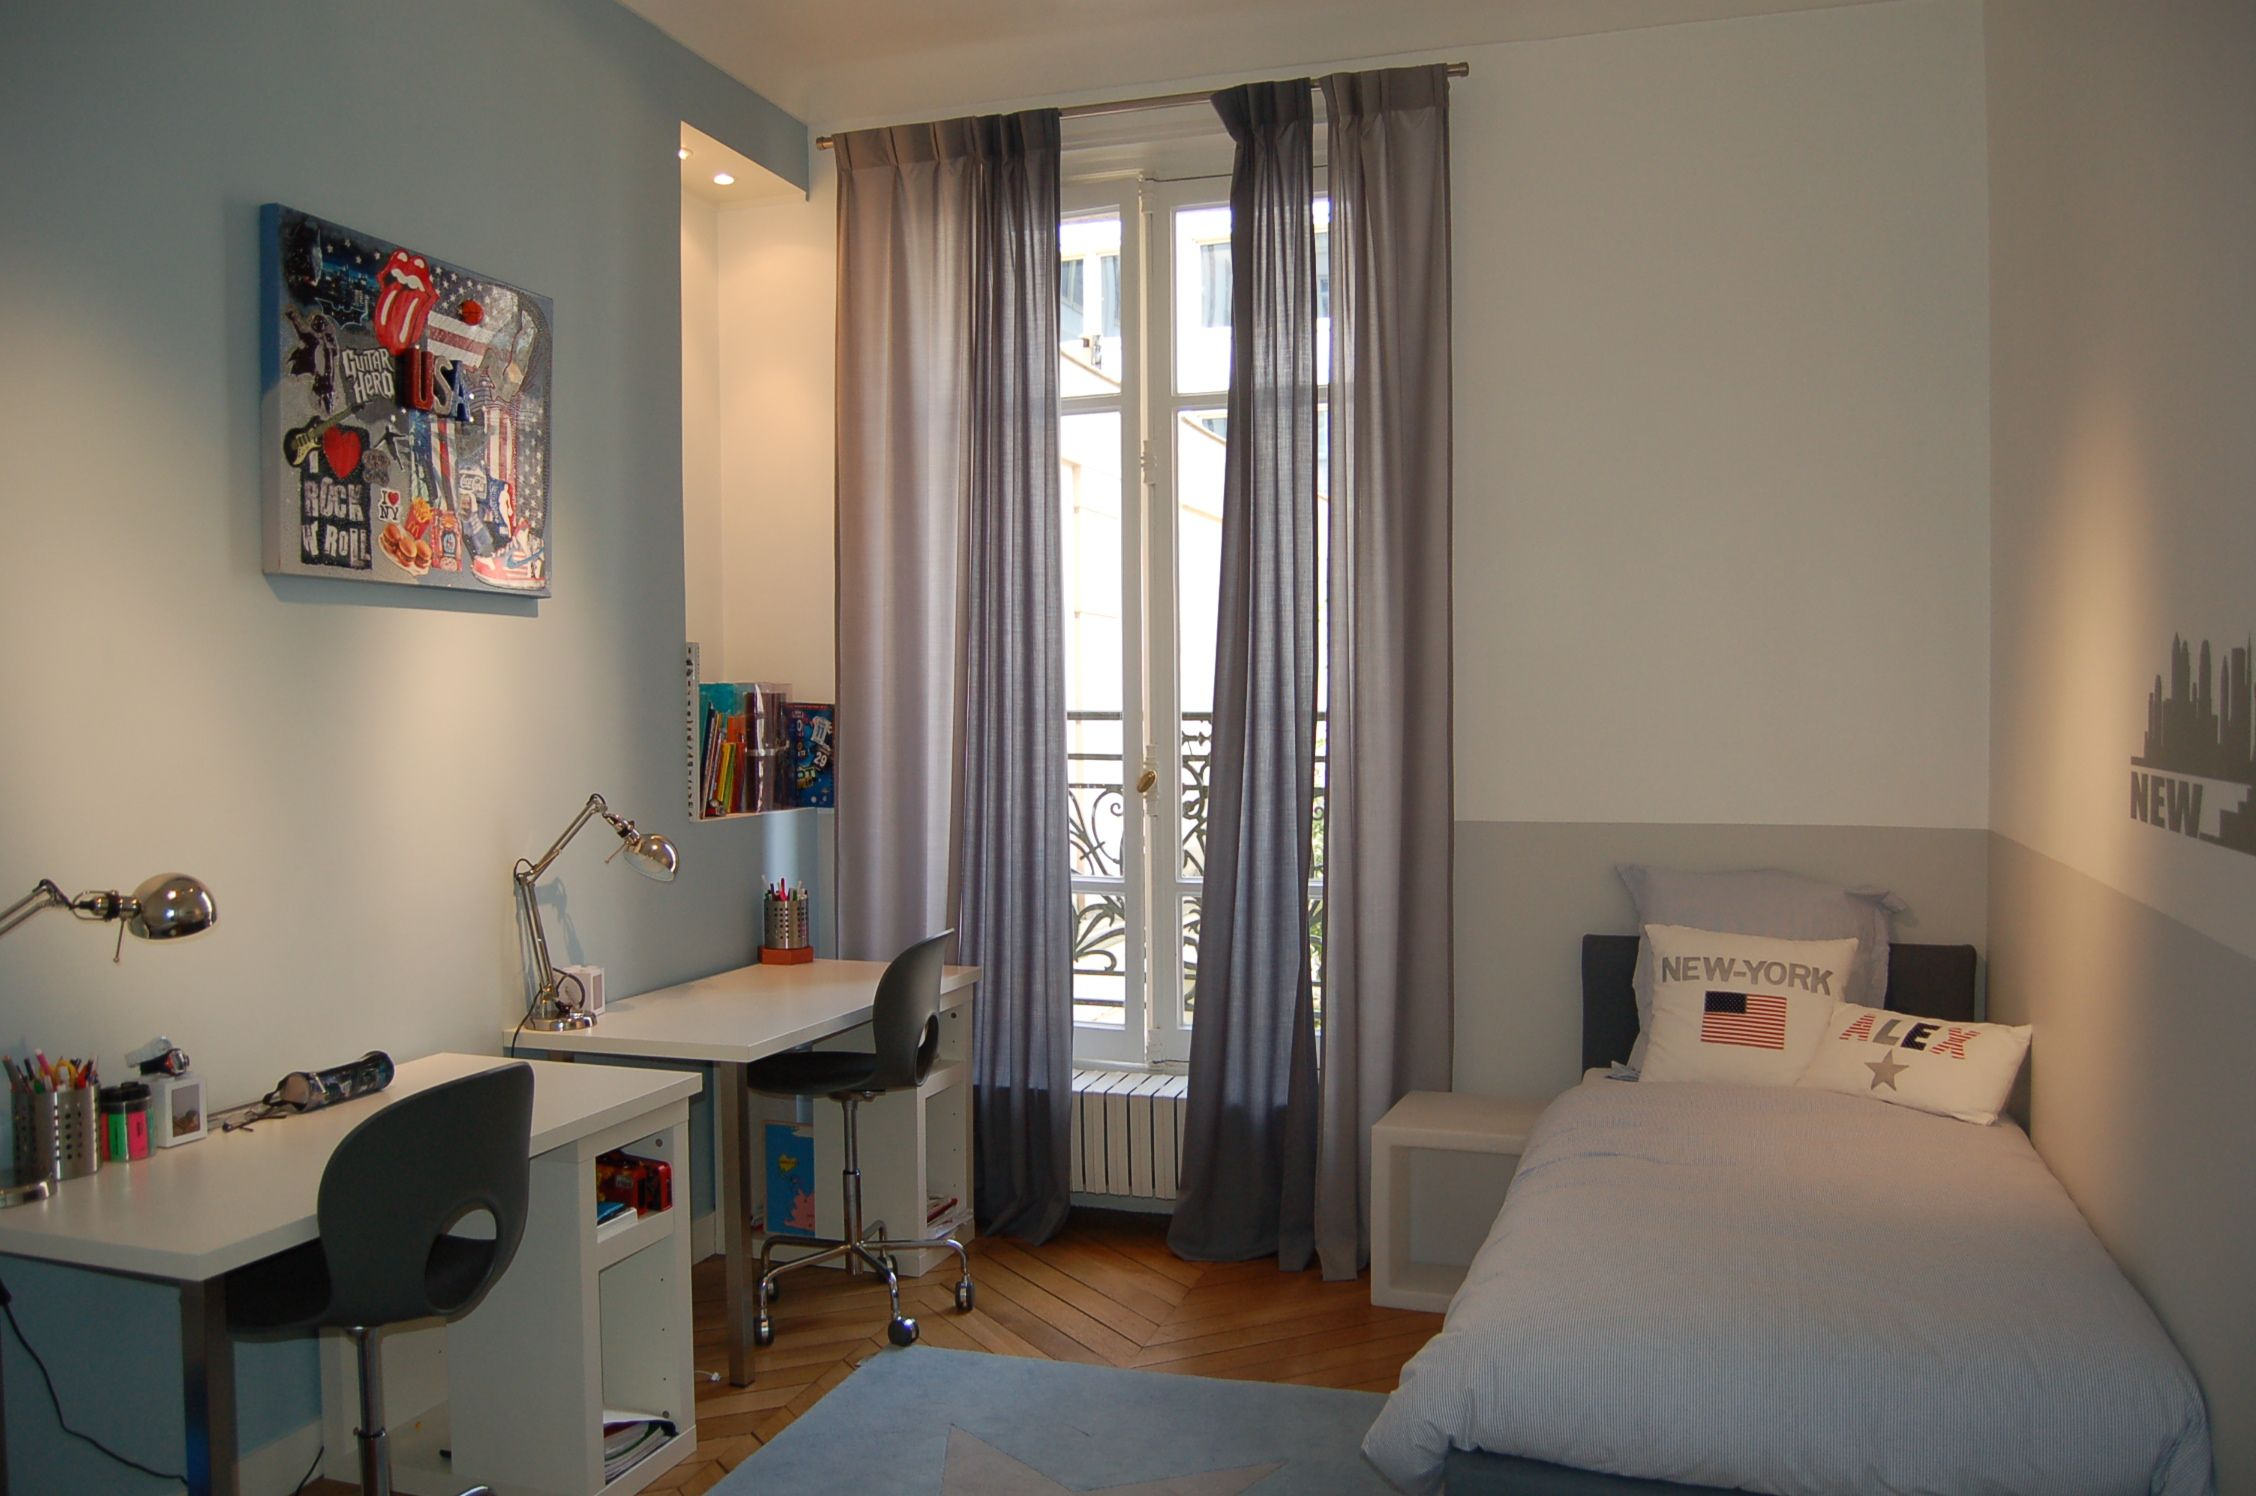 Chambre new york new york chambre grise chambre gar on chambre grise chambre enfant - Chambre parentale grise ...